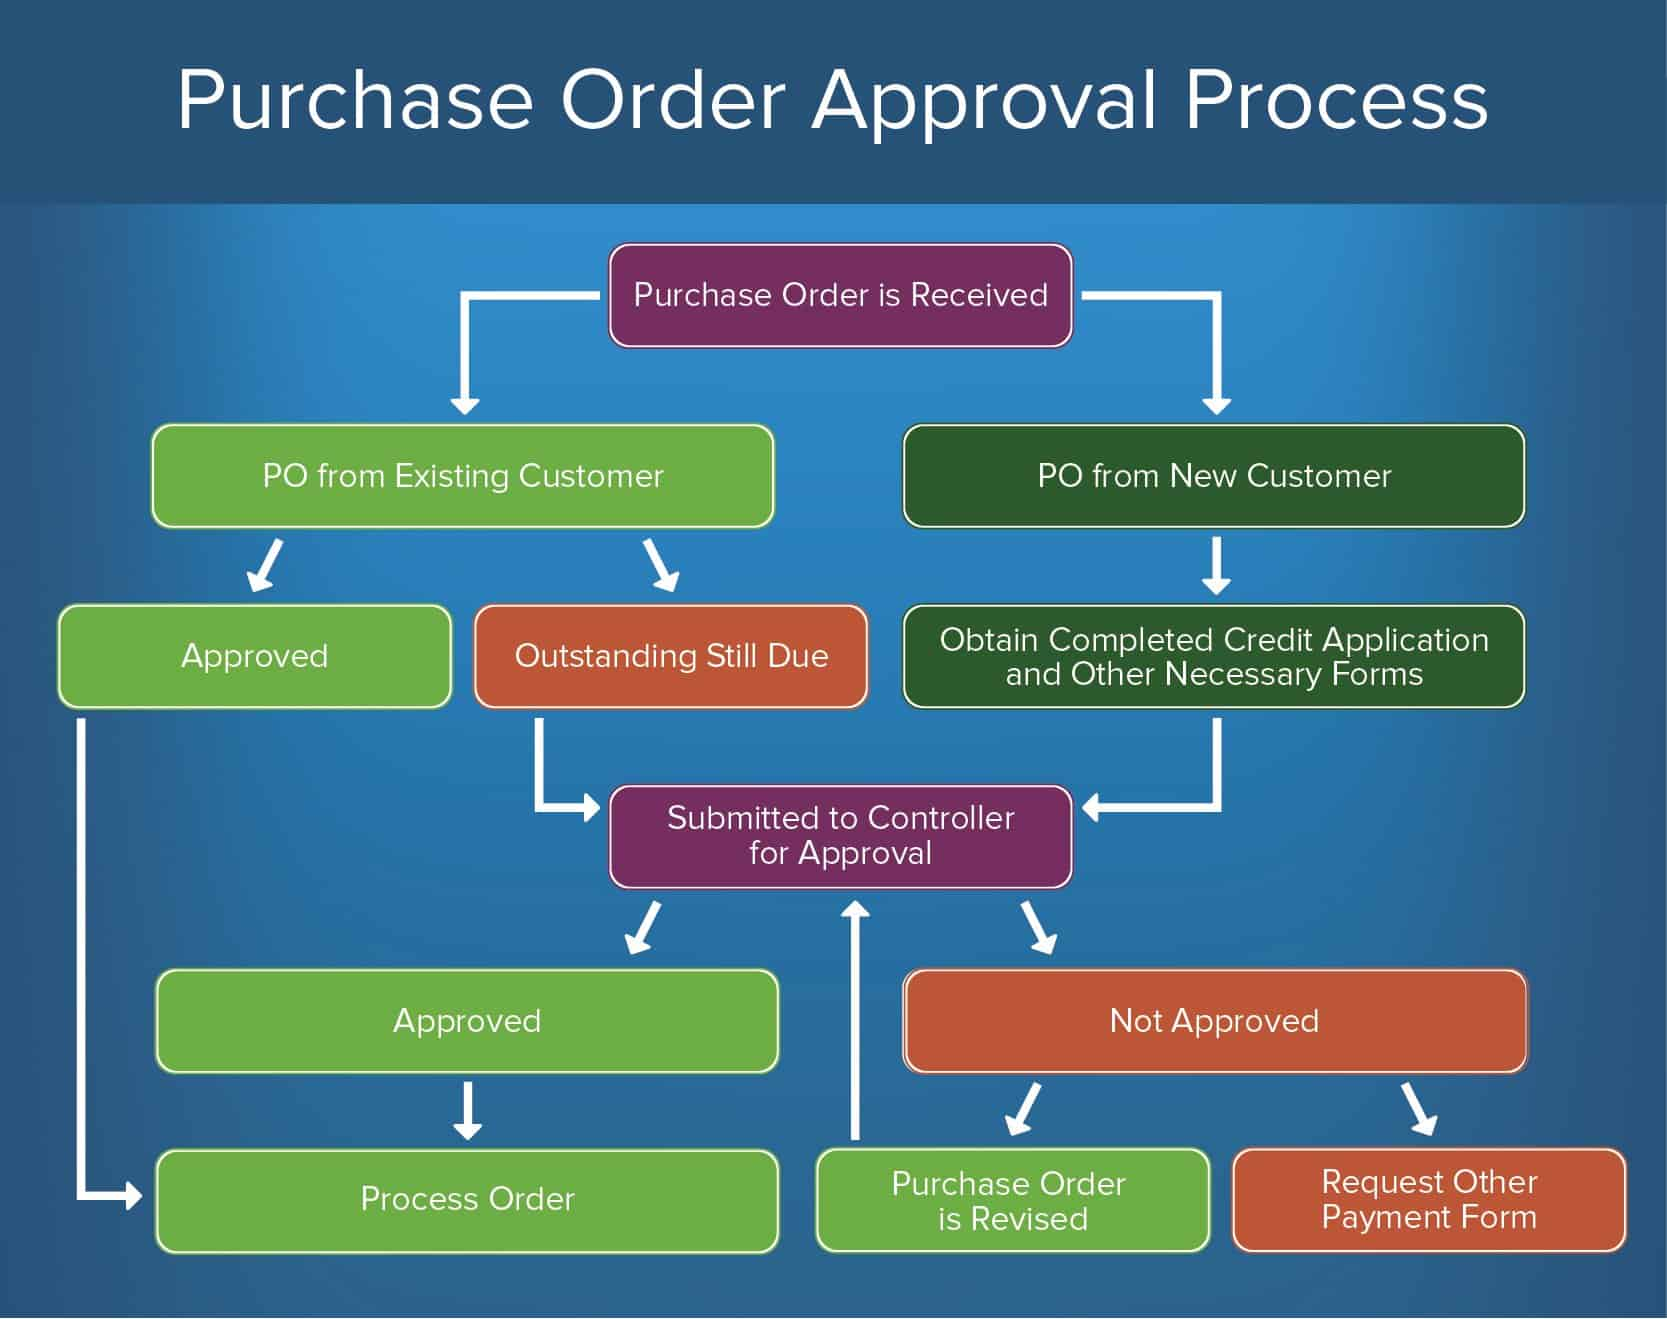 How To Create An Approval Process Smartsheet Make Your Own Circuit Online A Purchase Order